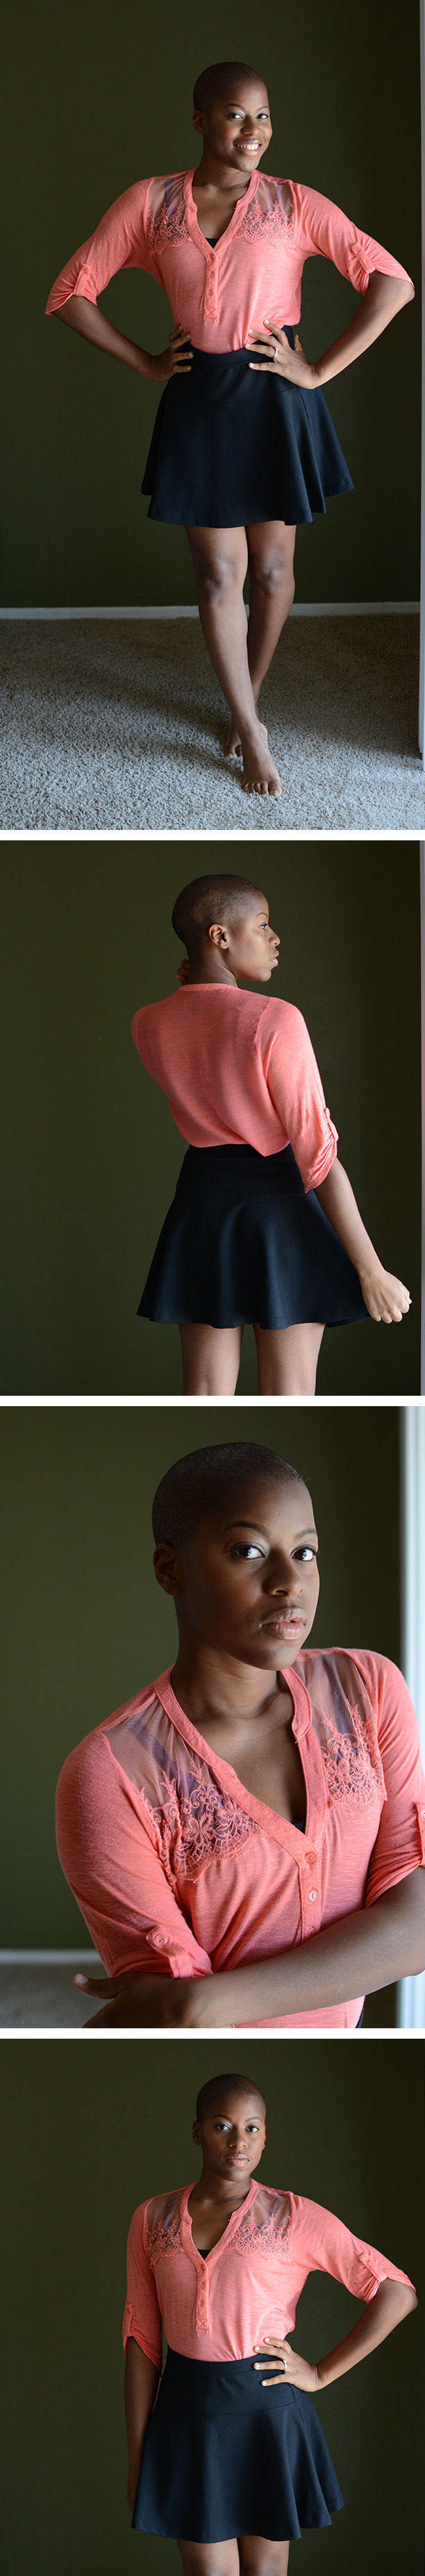 Elleword - my thrifted peach shirt looked great with this skater skirt. You don't have to spend lots of money to look good.